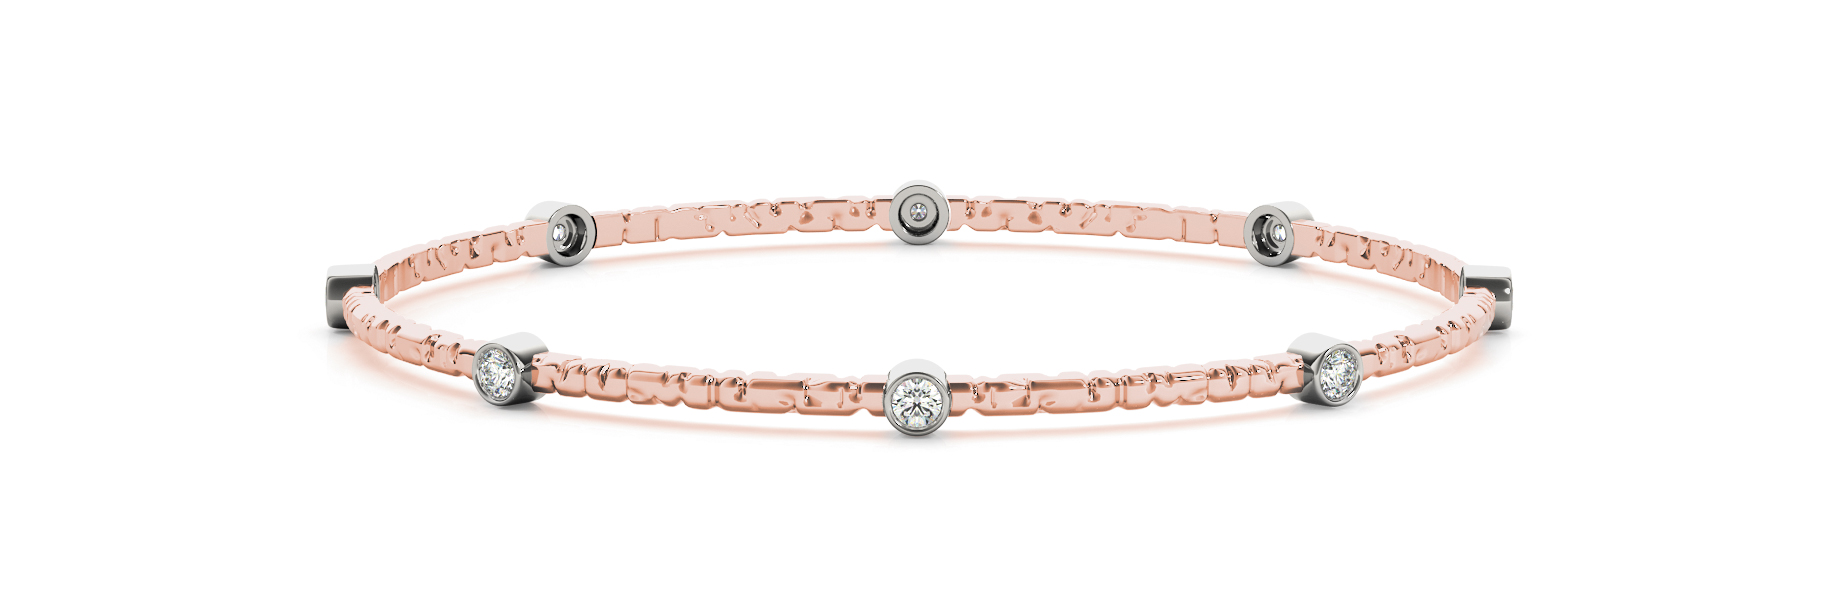 0.8 Carat Round Diamond Bangle in Rose Gold